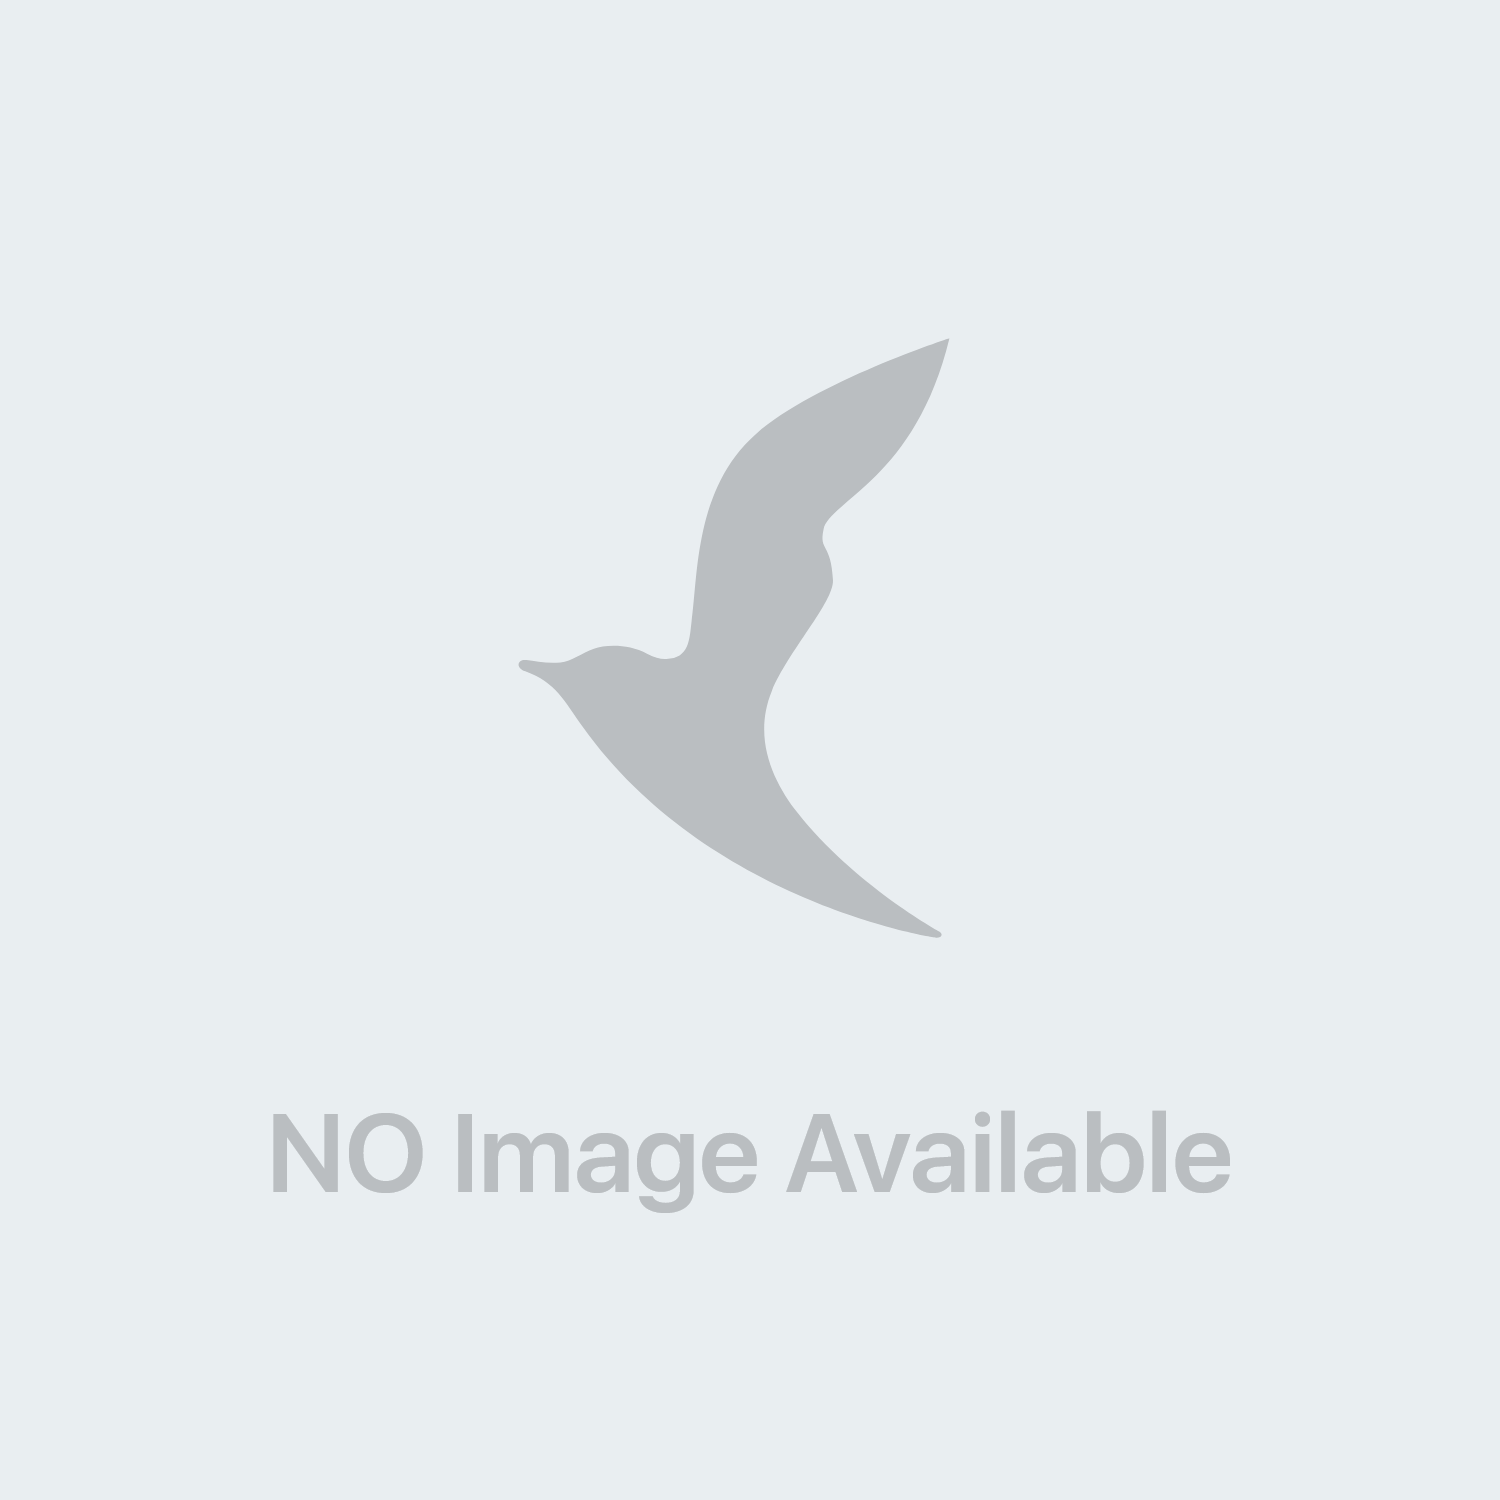 Amukine Med Spray Cutaneo 200 ml 0,05%